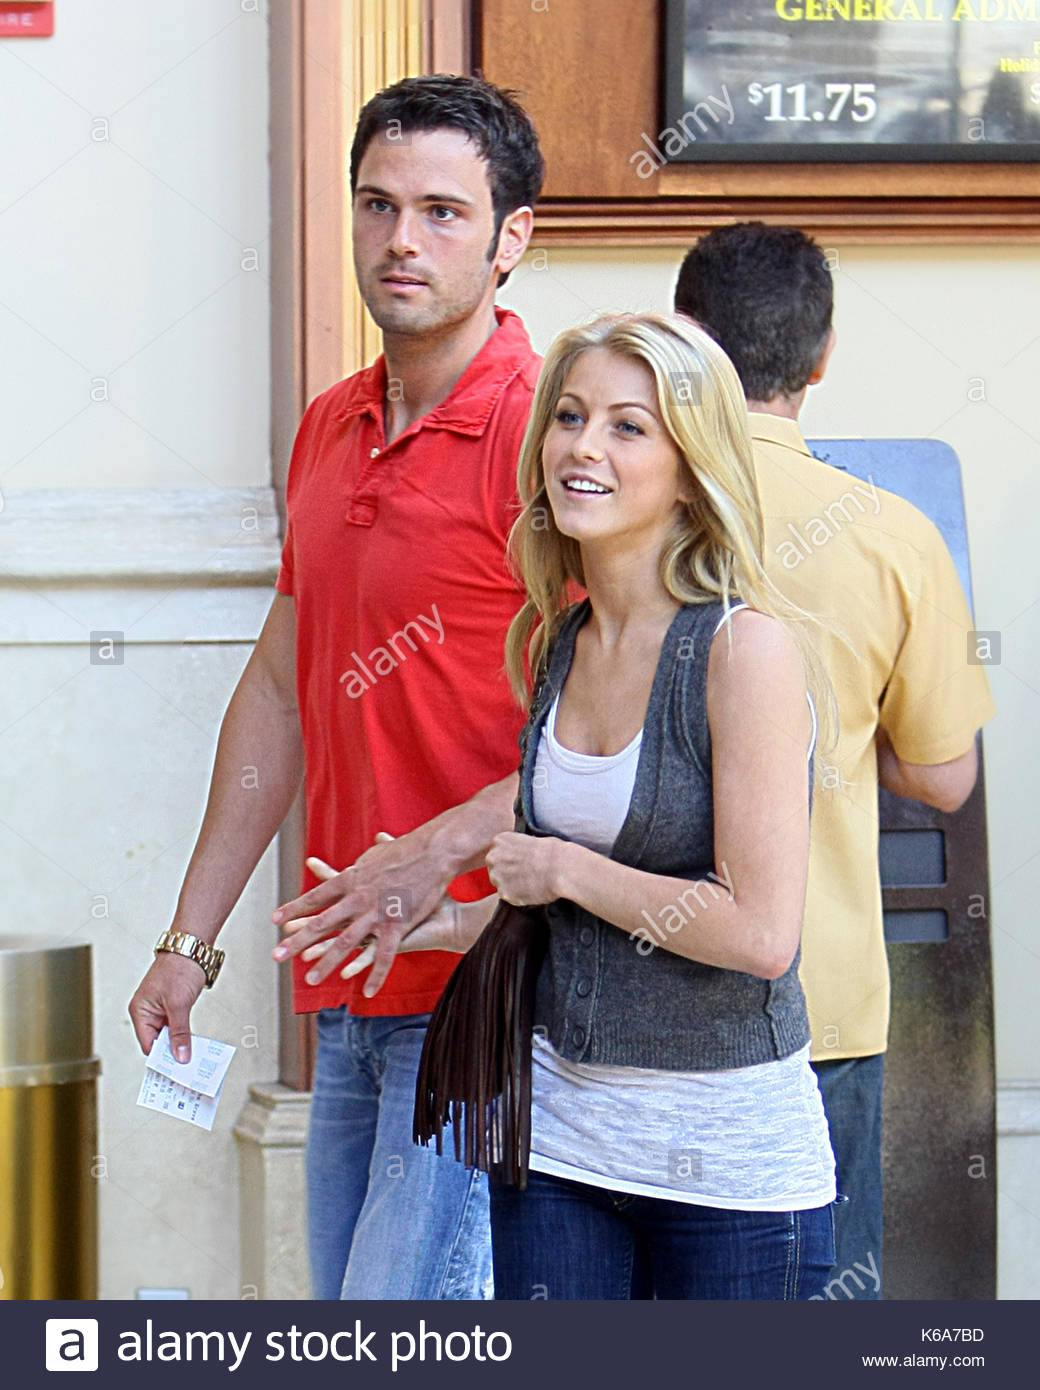 Julianne hough dating zach wilson